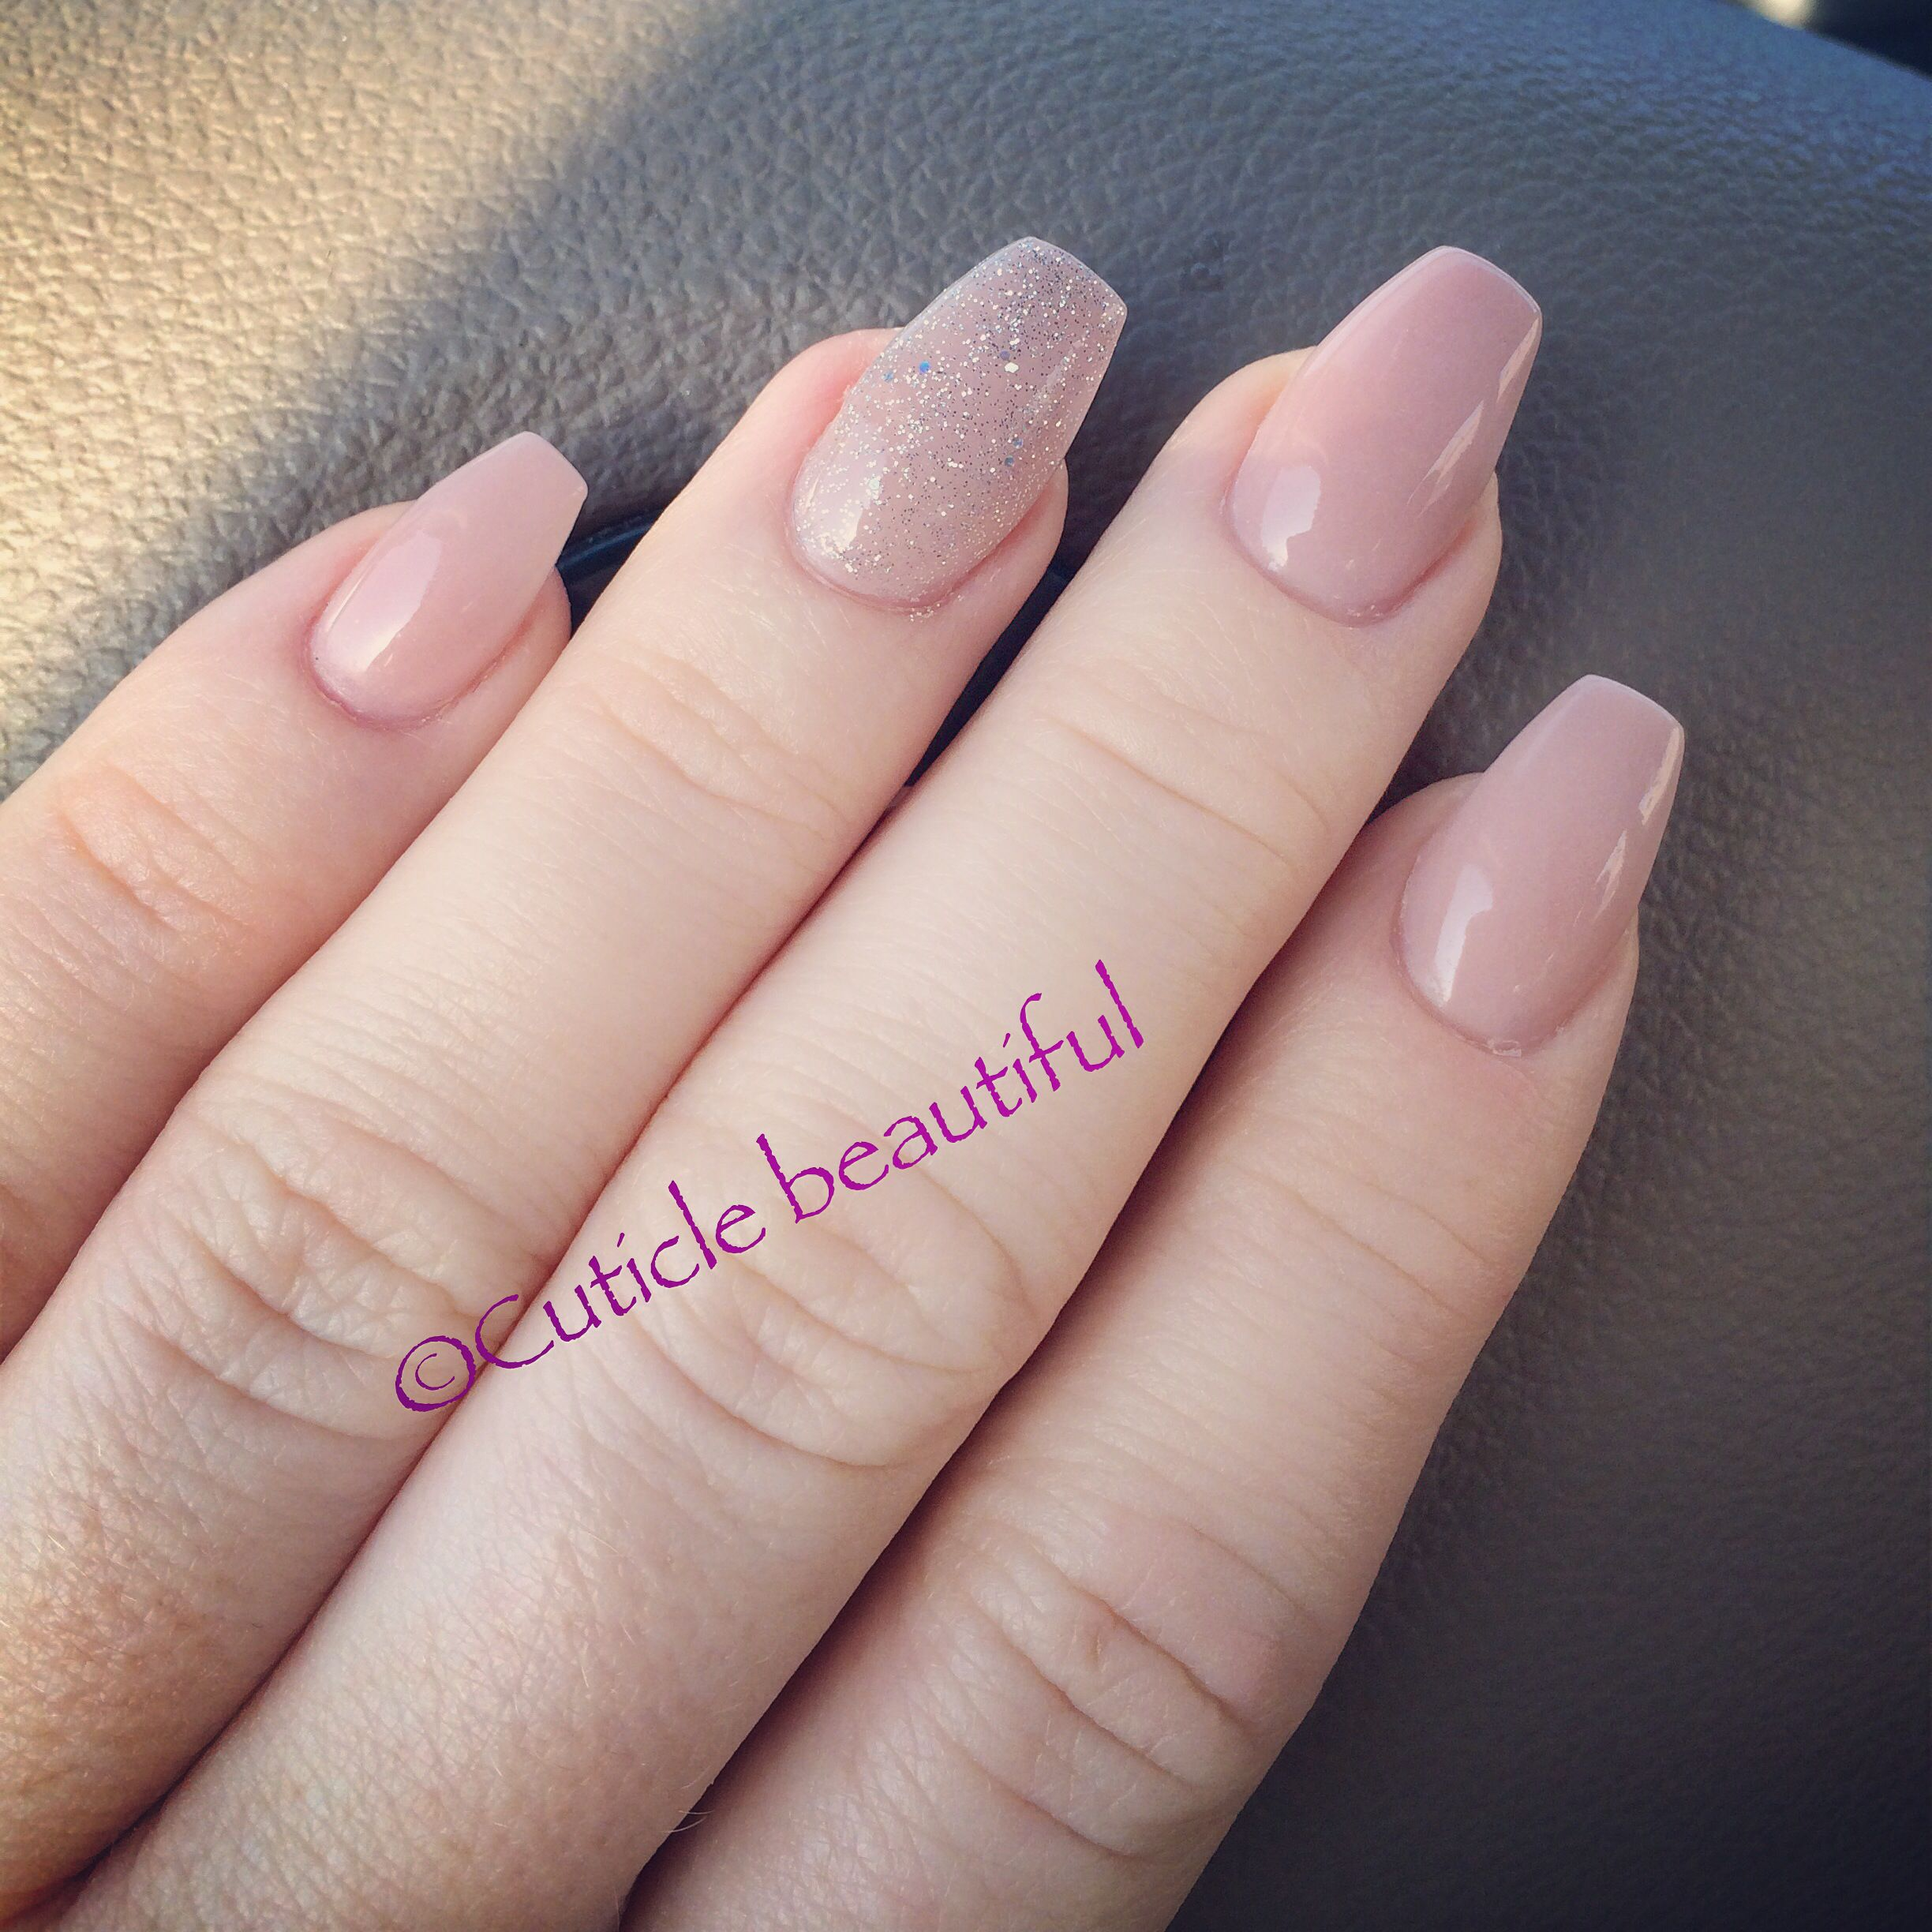 Love The Ballerina Nail Shape Ballerina Nails Shape Ballerina Acrylic Nails Ballerina Nails